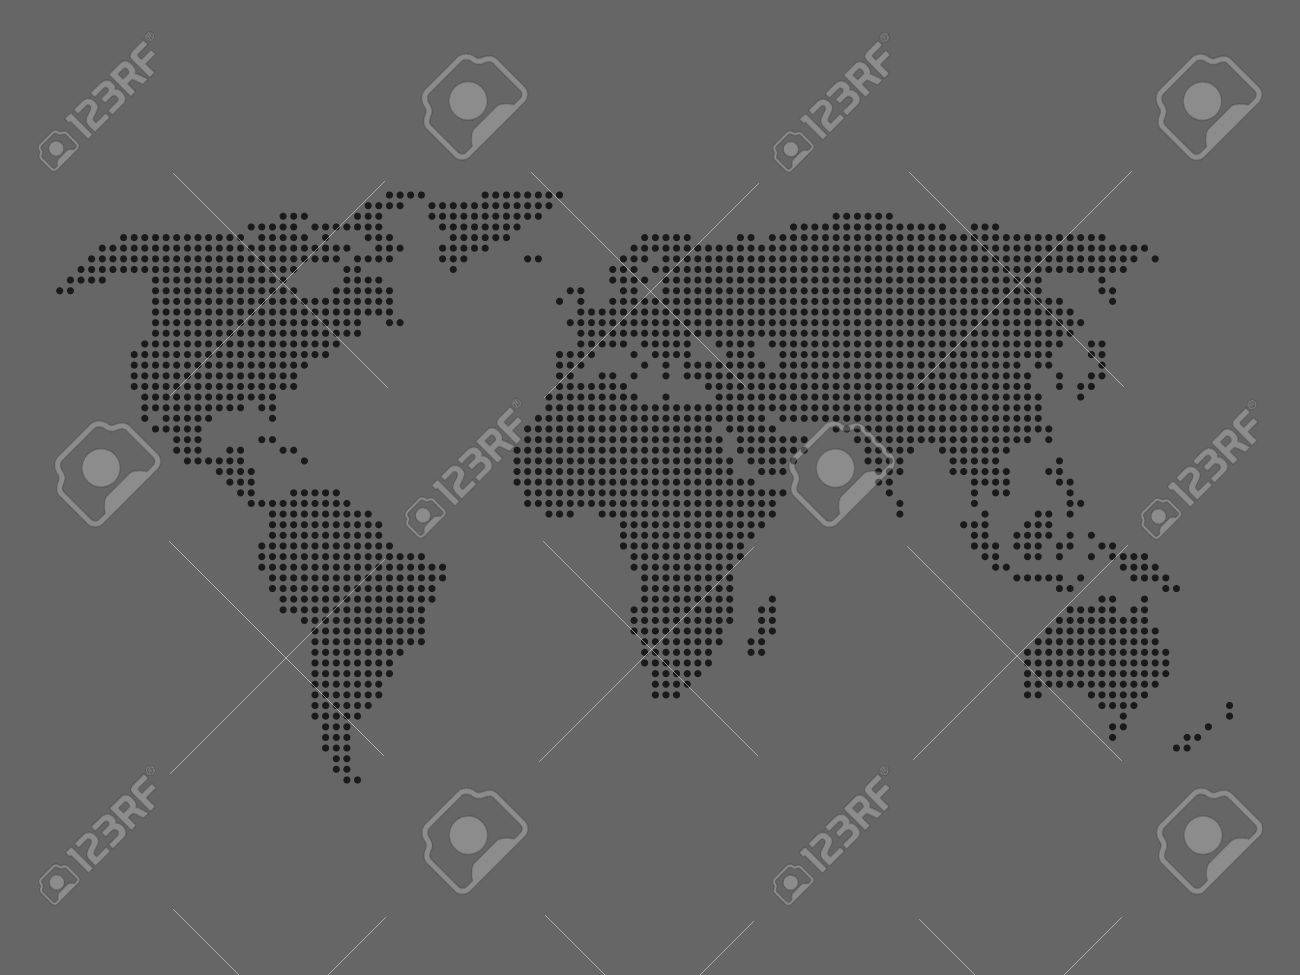 Dotted world map dark grey map on grey background vector dotted world map dark grey map on grey background vector illustration made of small gumiabroncs Images